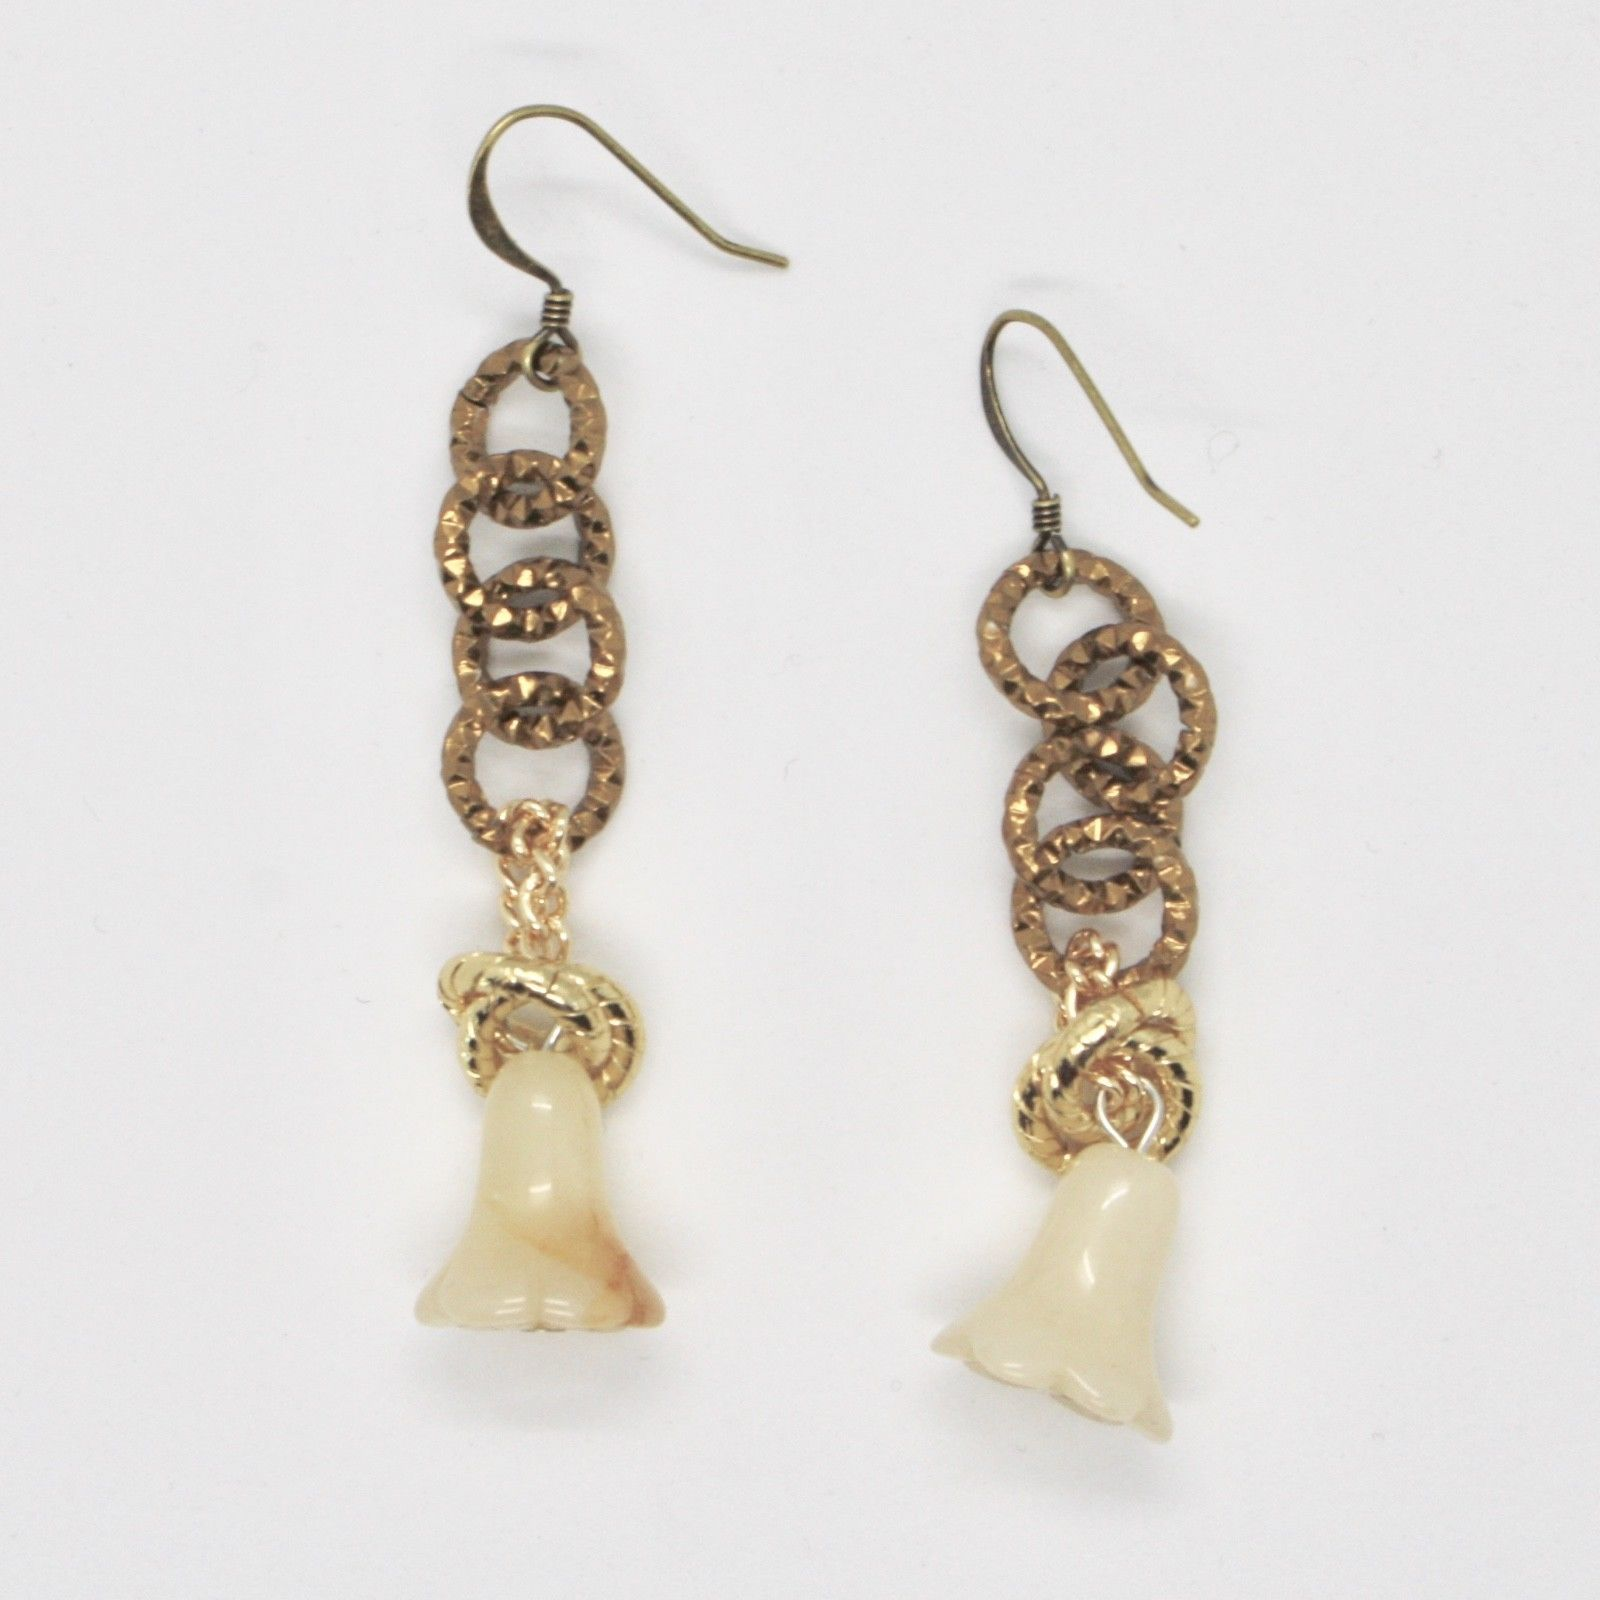 DROP EARRINGS ALUMINUM LAMINATED YELLOW GOLD WITH GIADA IN BELLFLOWER